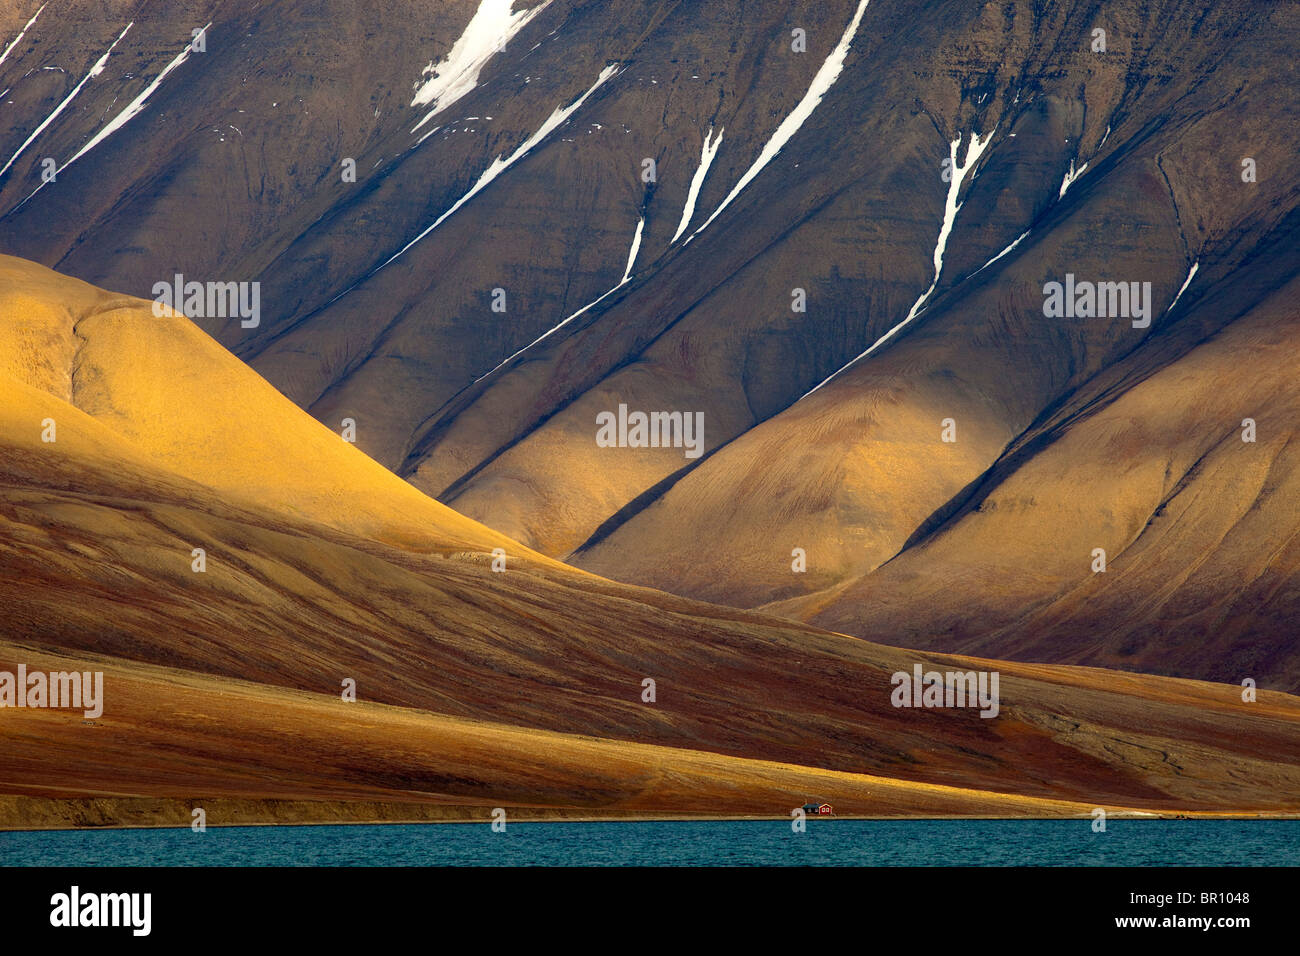 ARCTIC LANDSCAPE on Svalbard with house - Stock Image